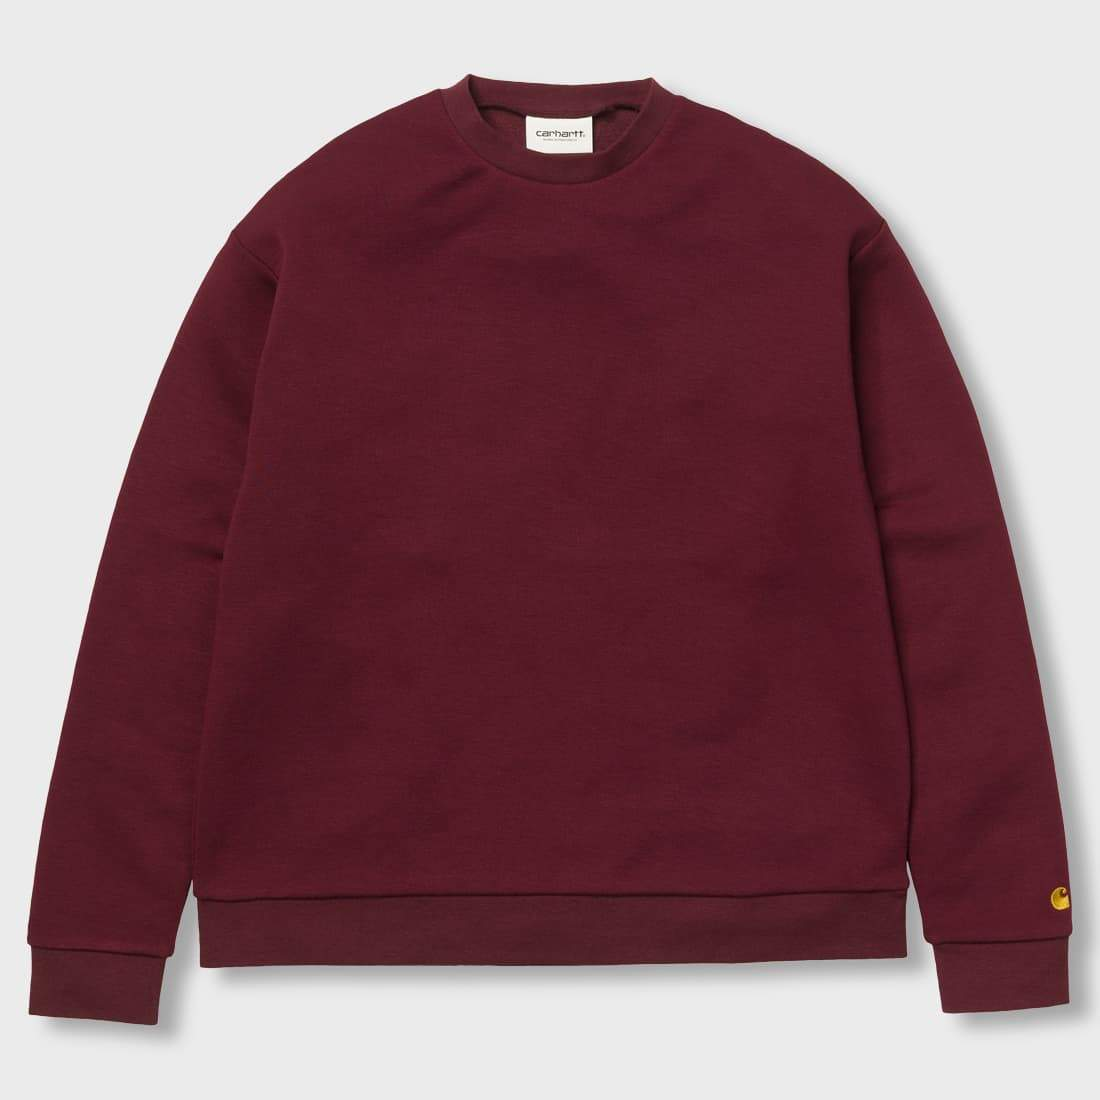 Carhartt WIP Women's Chase Sweater